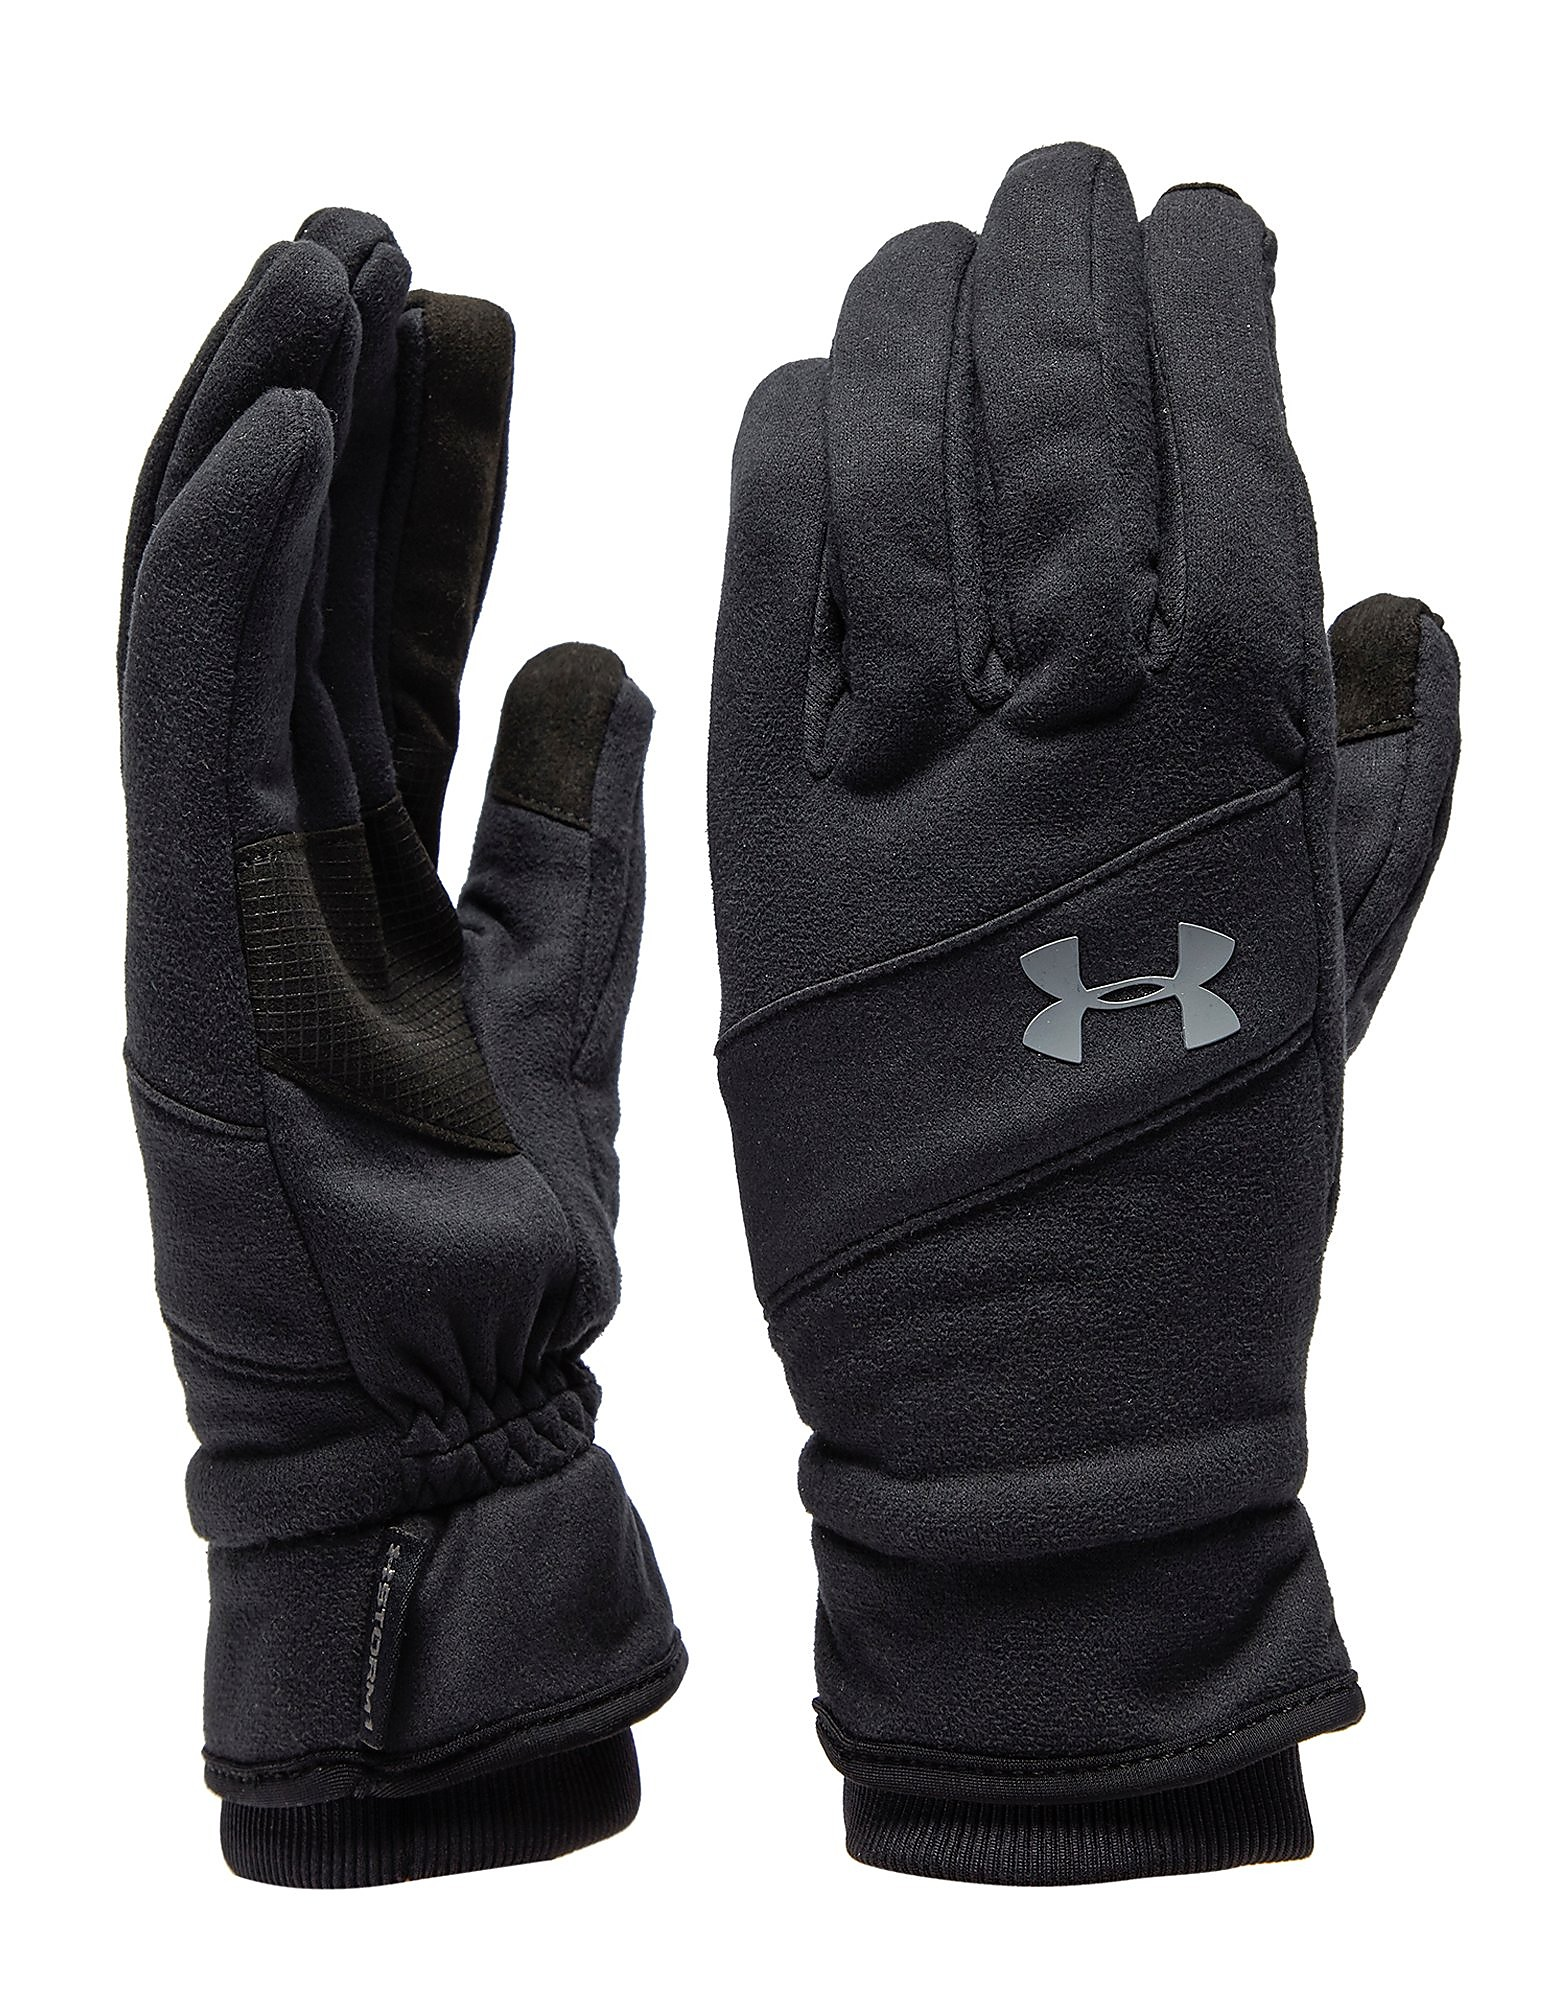 Under Armour Storm ColdGear Infrared Elements Gloves